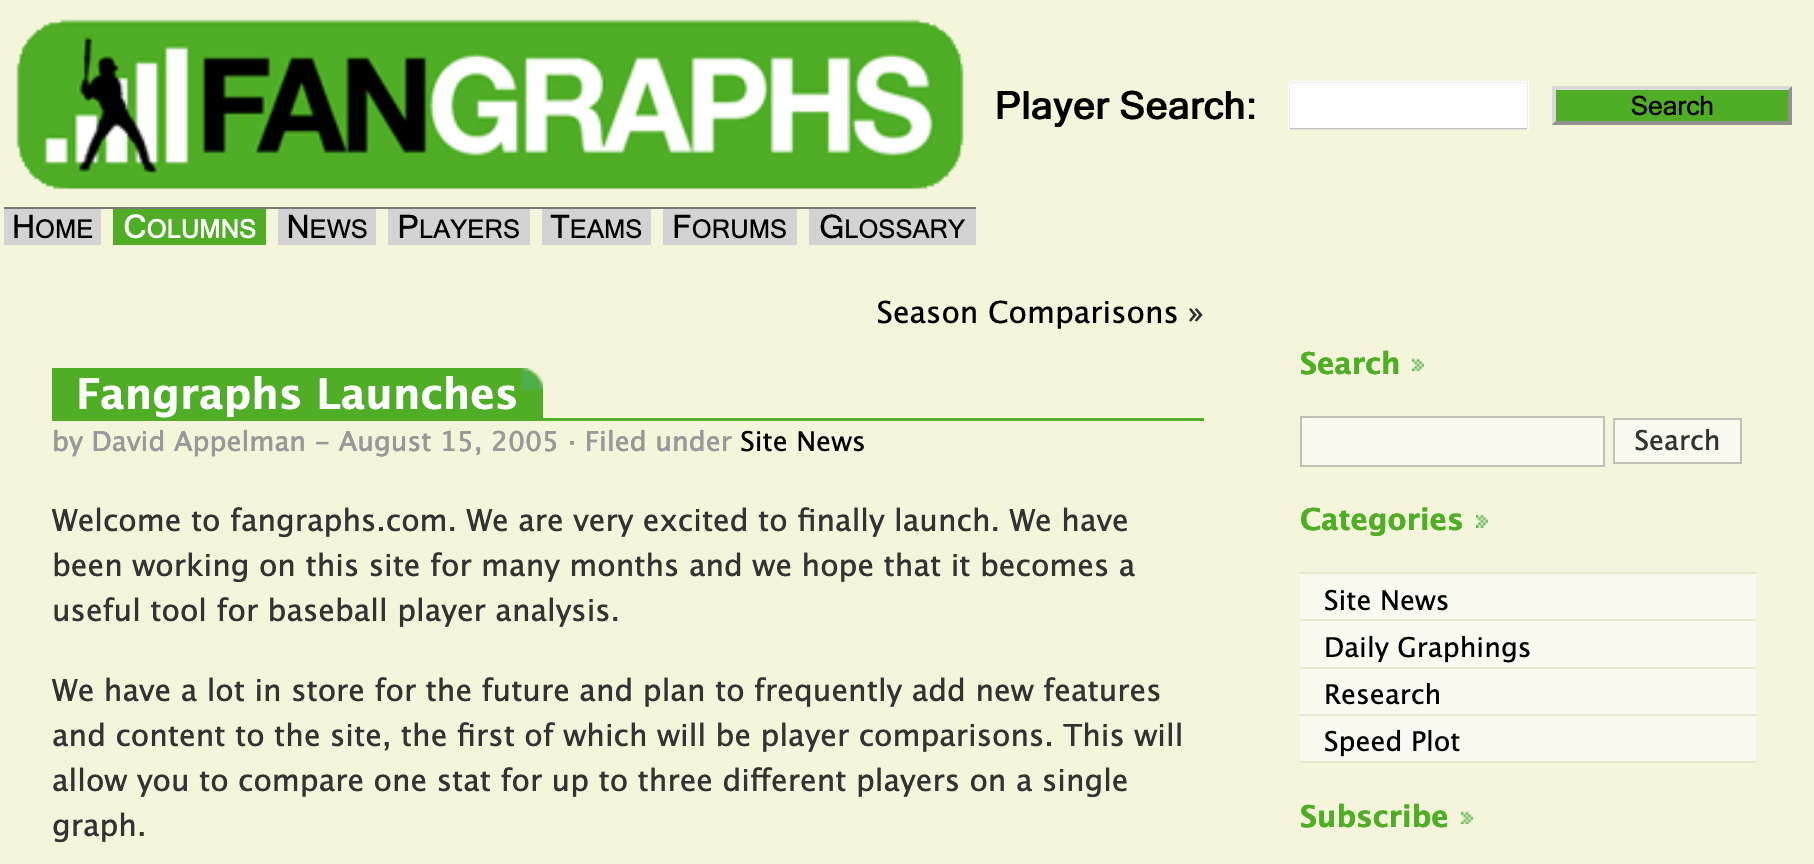 Created by David Appelman in 2005, FanGraphs has become one of the most influential baseball websites in the game.